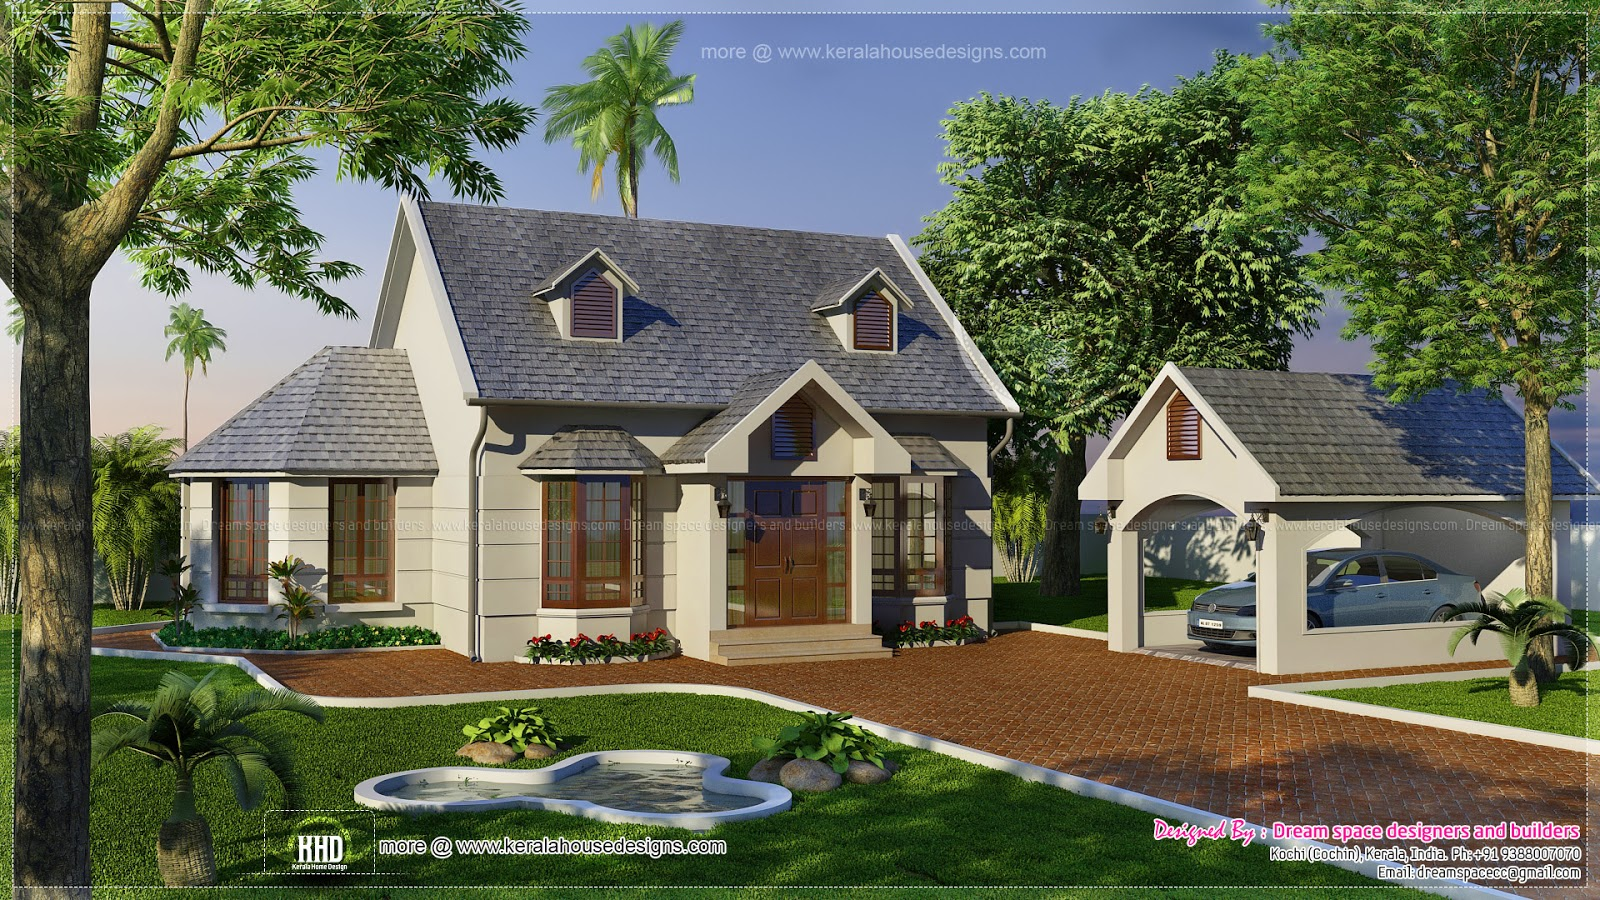 Vacation garden home design in 1200 home kerala for Gardenia home